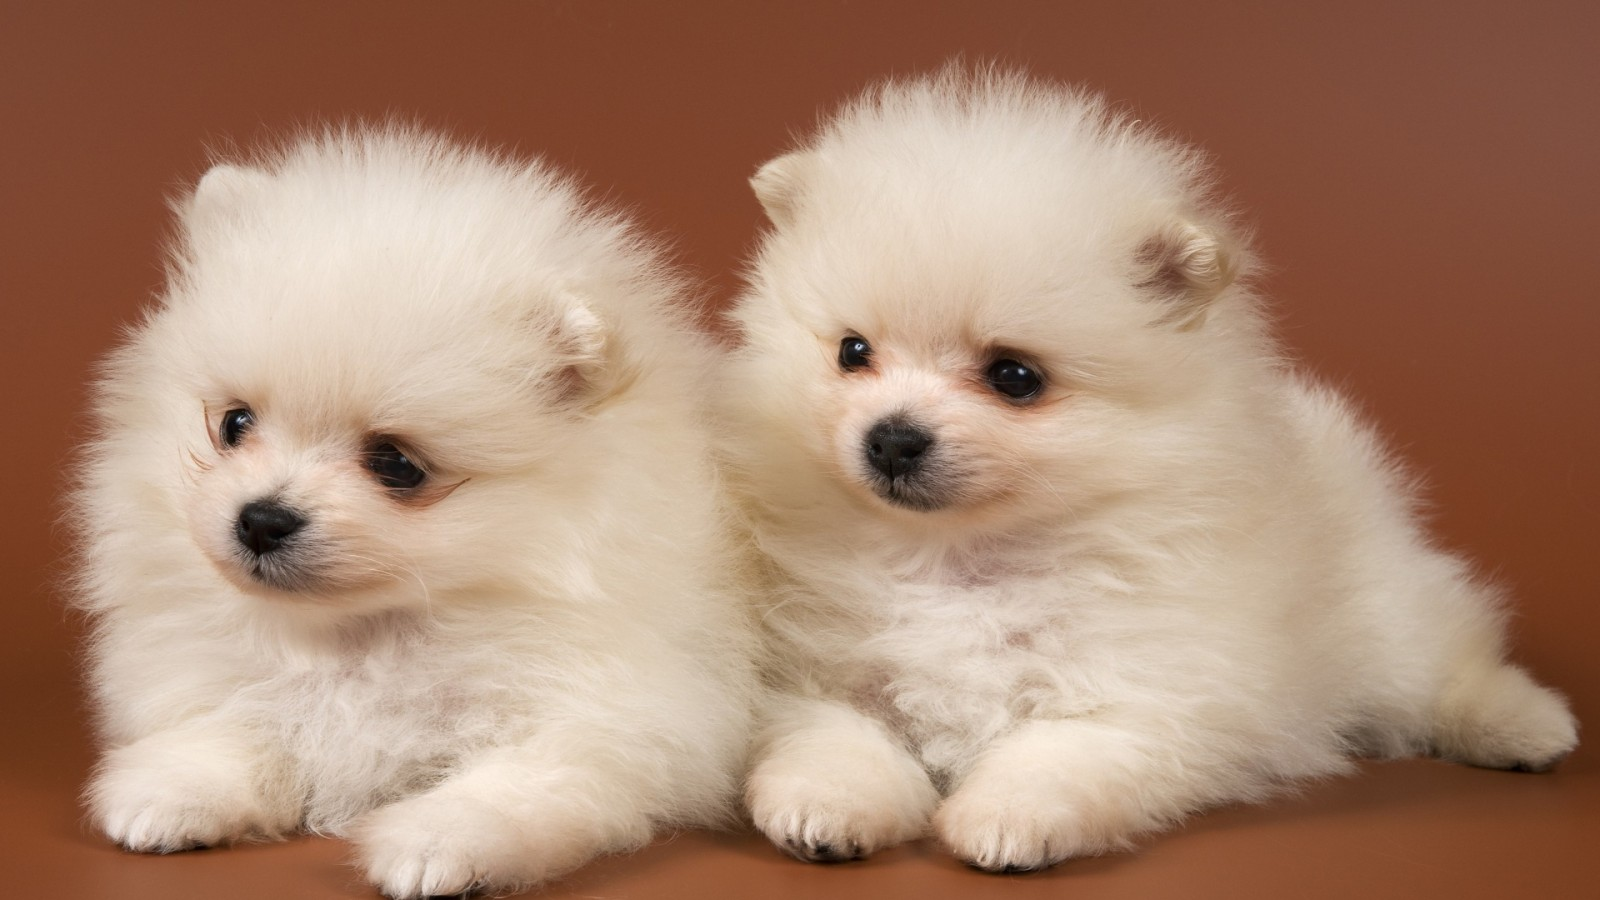 adorable dogs animal awesome baby cute dog dogs pets pomeranian HD Wallpaper